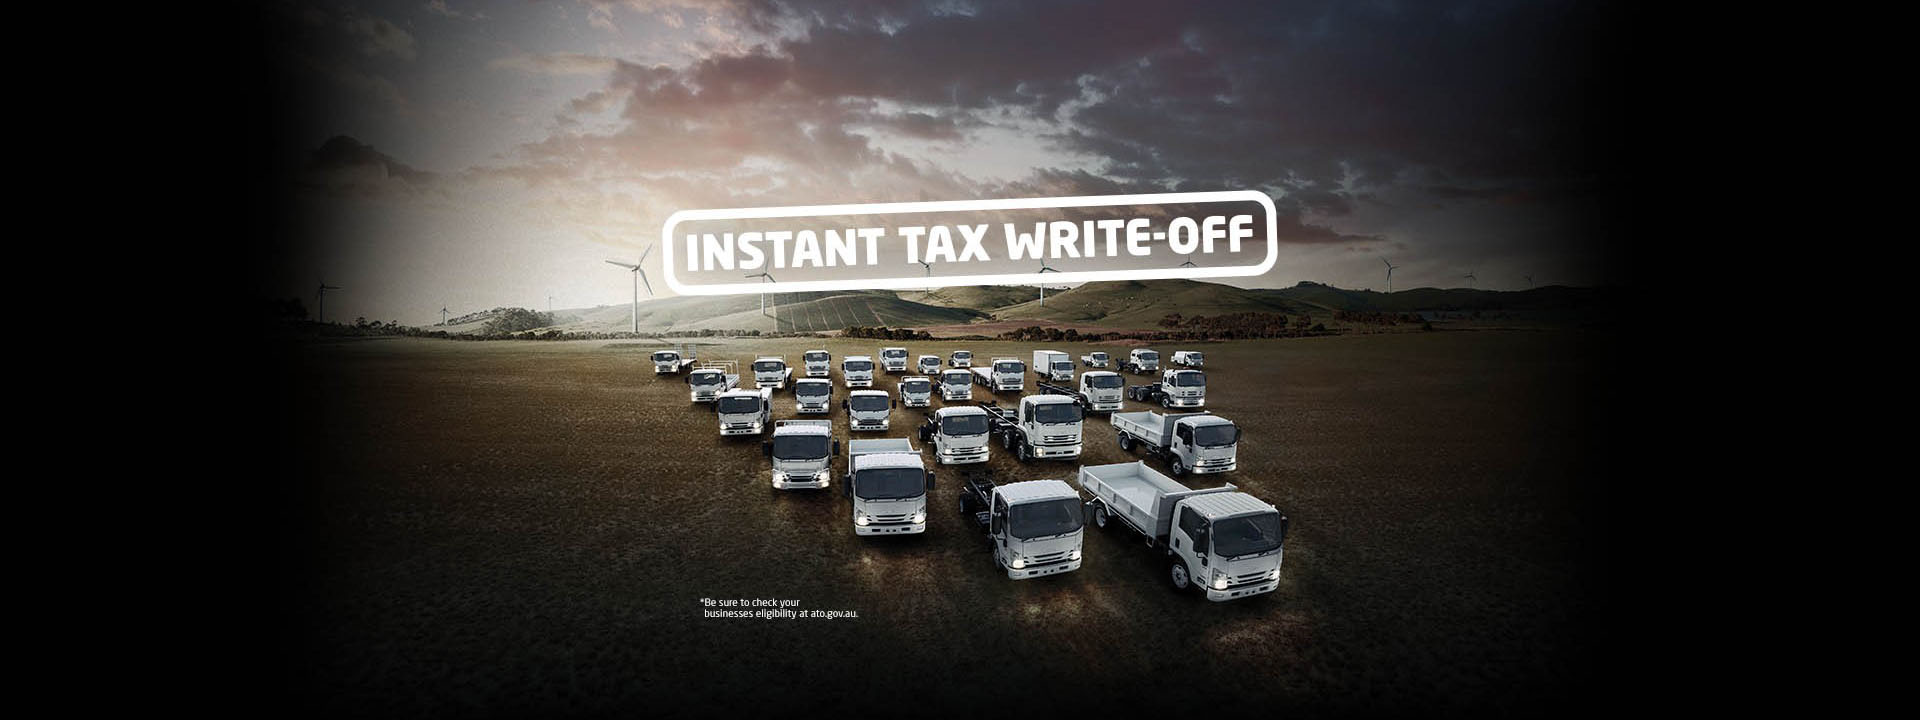 INSTANT TAX WRITE-OFF